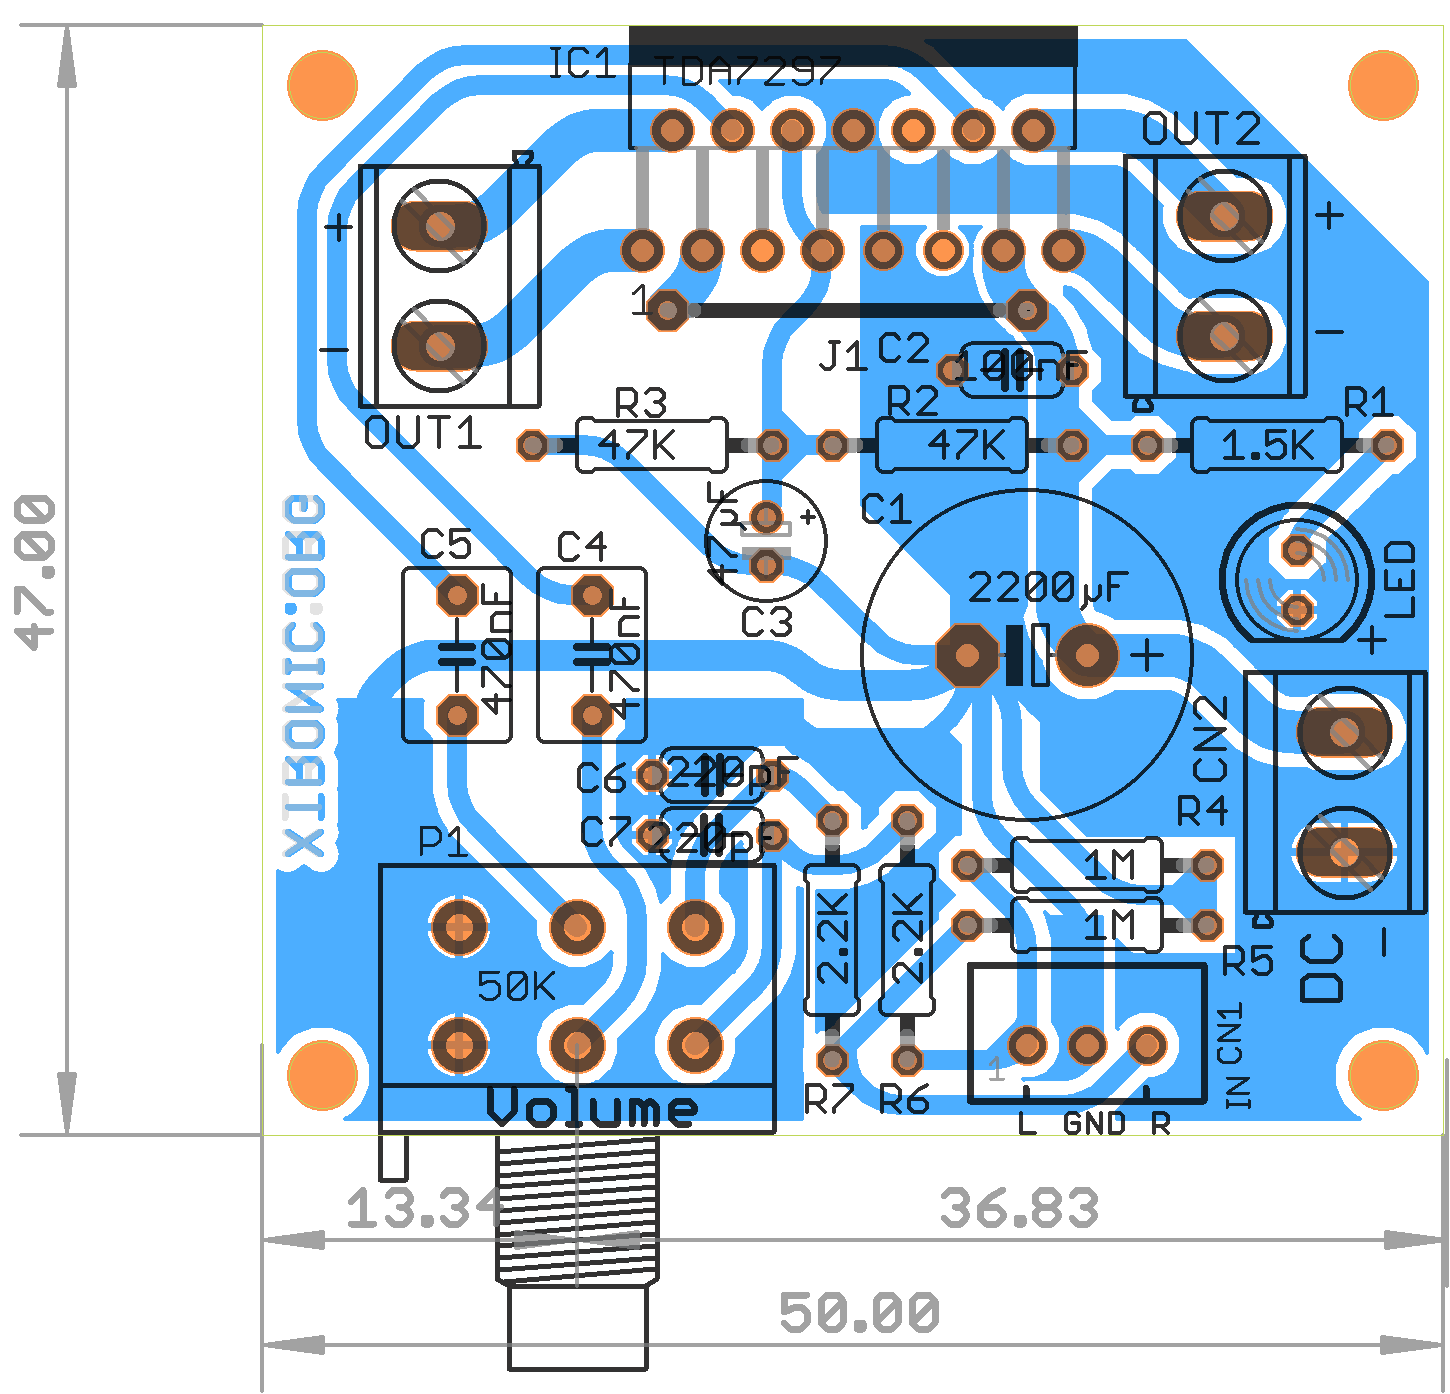 audio amplifier circuit diagram with layout iron carbon explanation stereo power tda7297 2 x 15 watts xtronic pcb 700x744